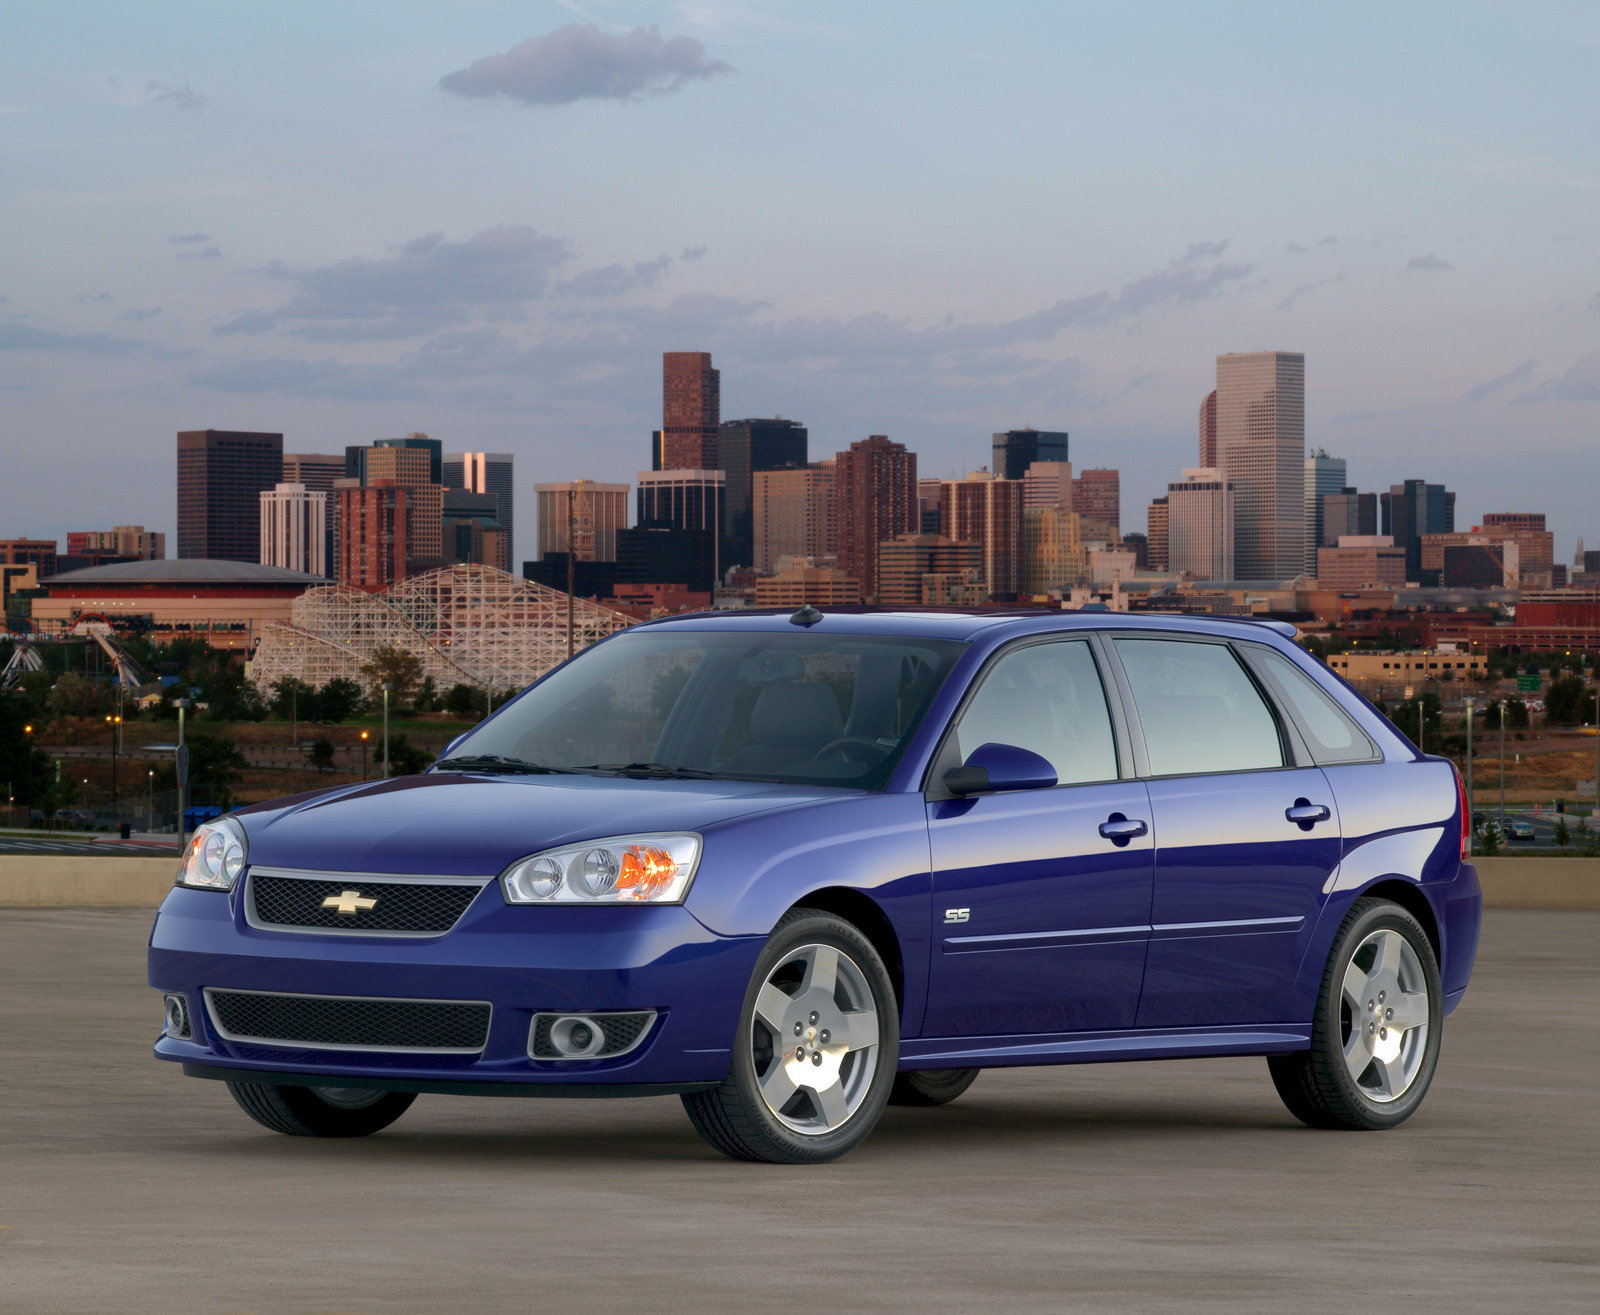 2007 chevrolet malibu maxx ss review top speed. Black Bedroom Furniture Sets. Home Design Ideas